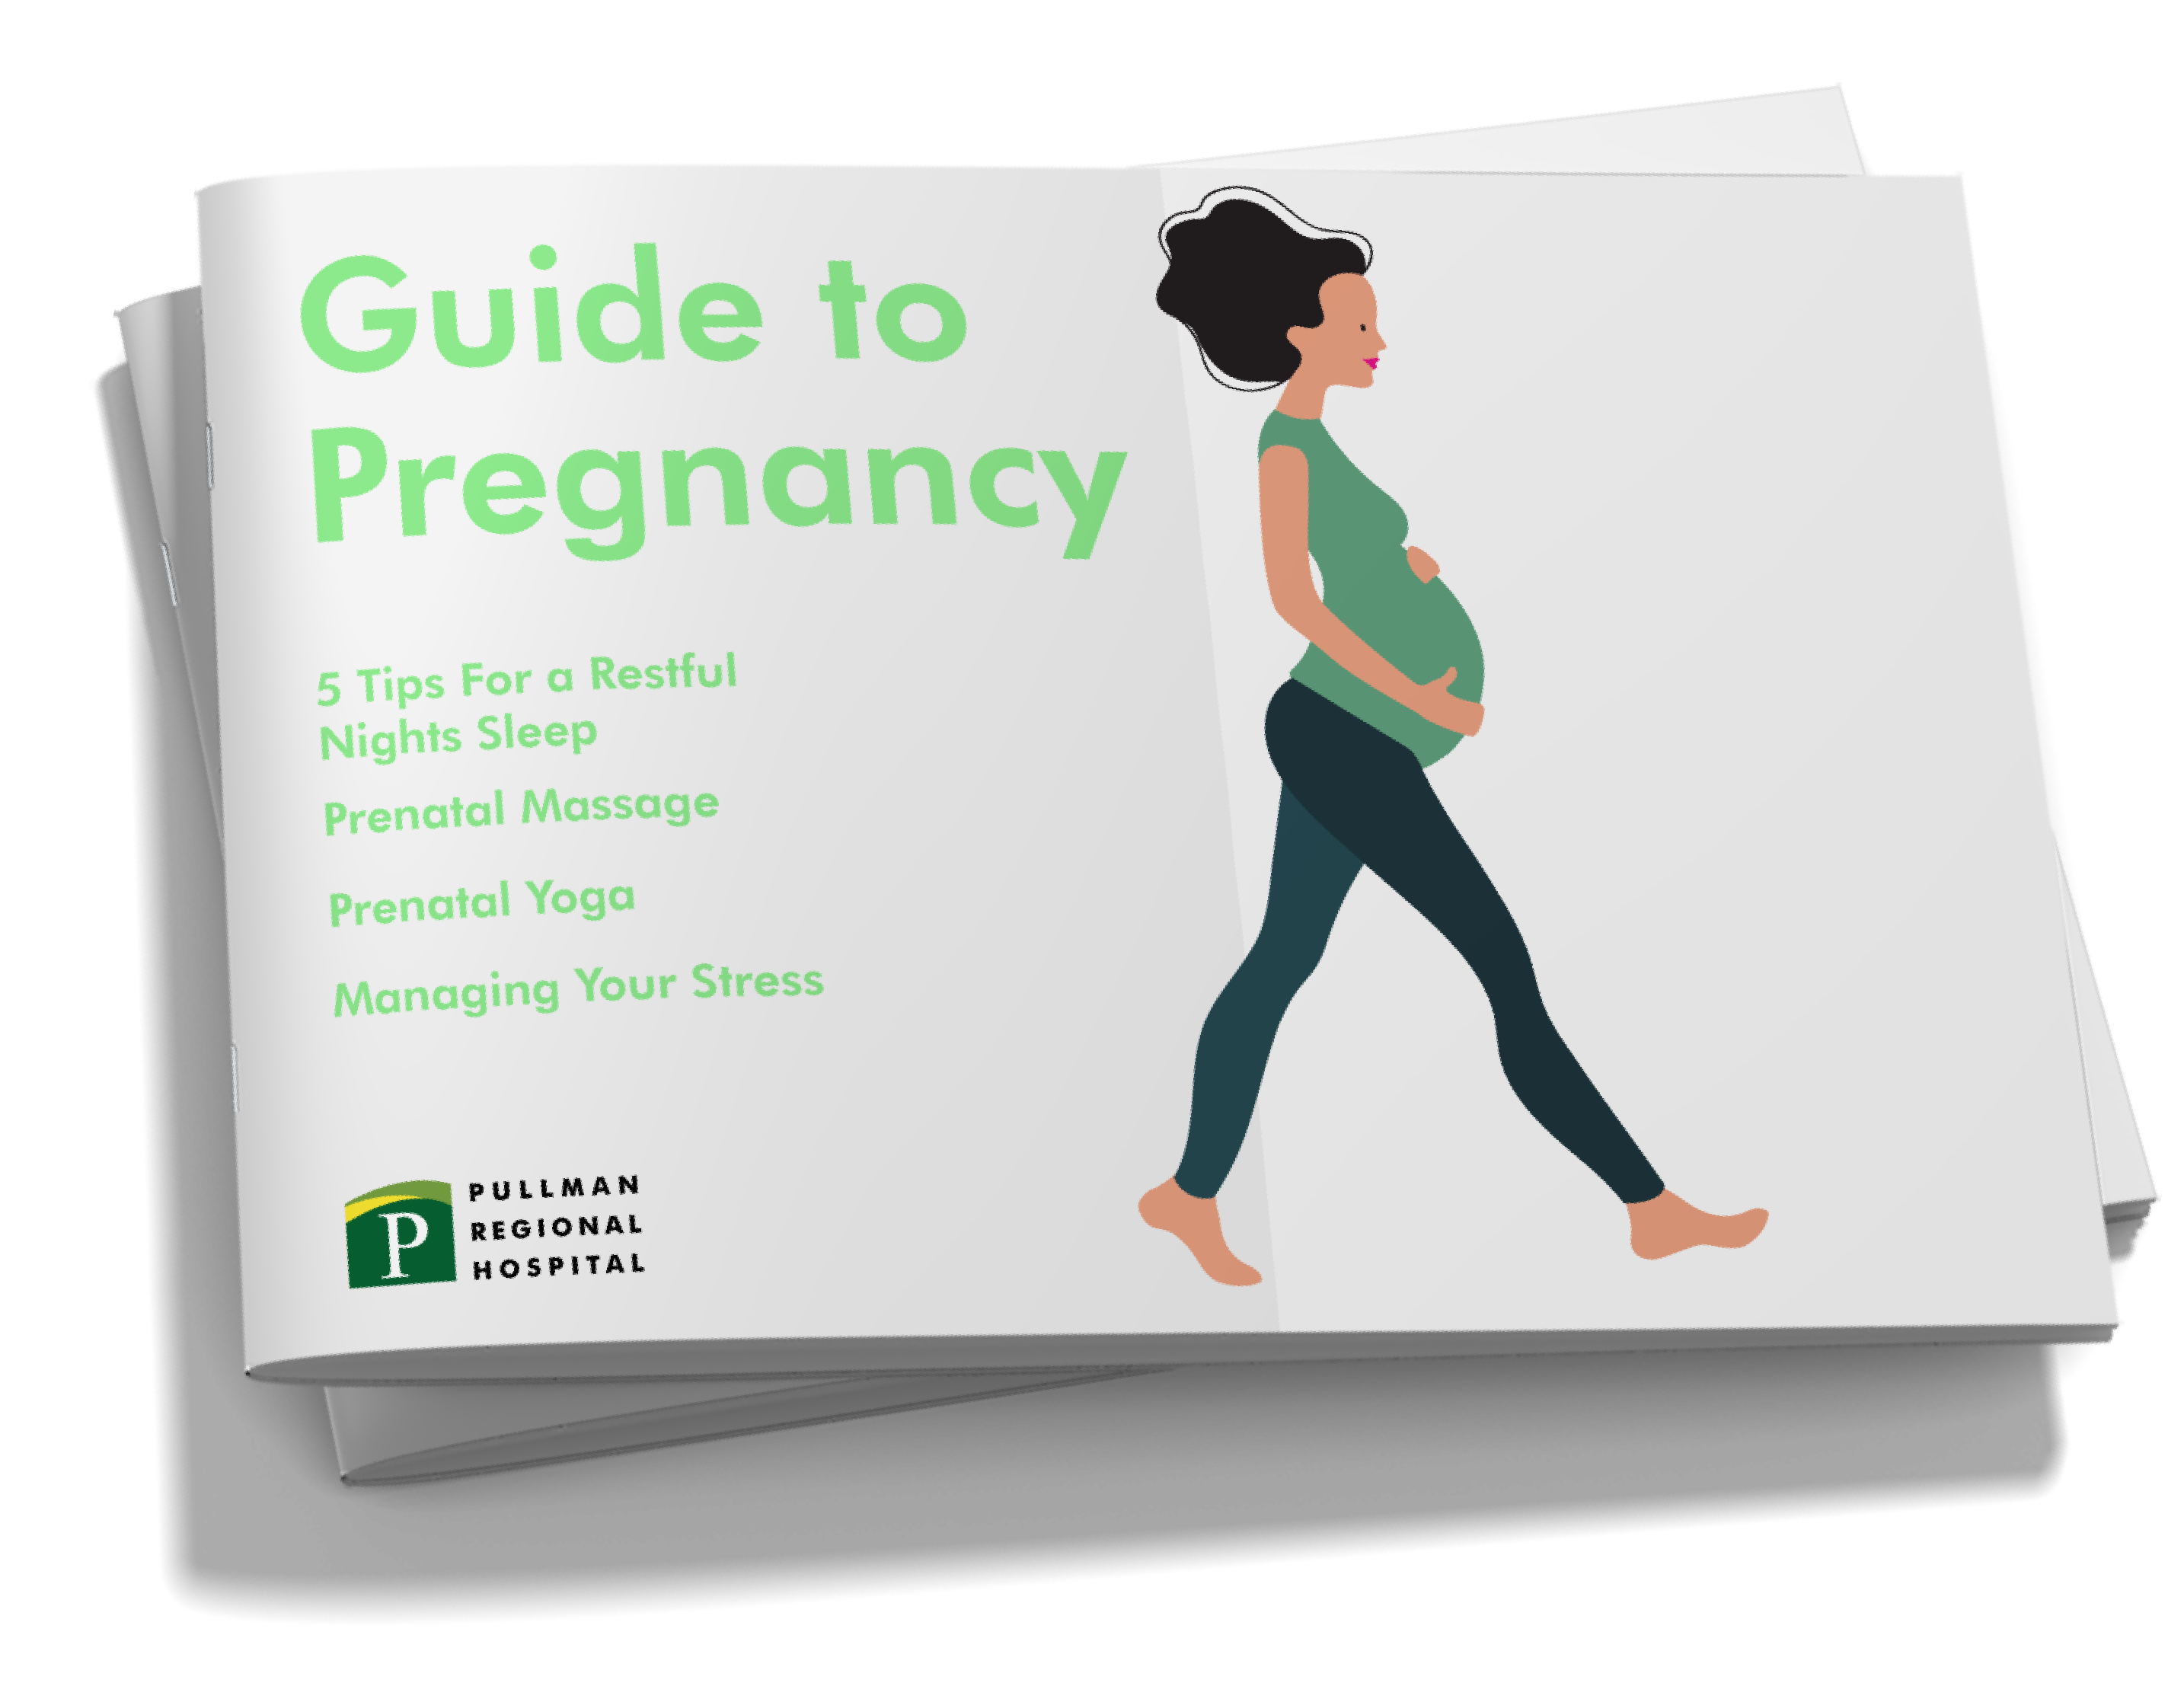 Guide To Pregnancy Download Cover Images-02